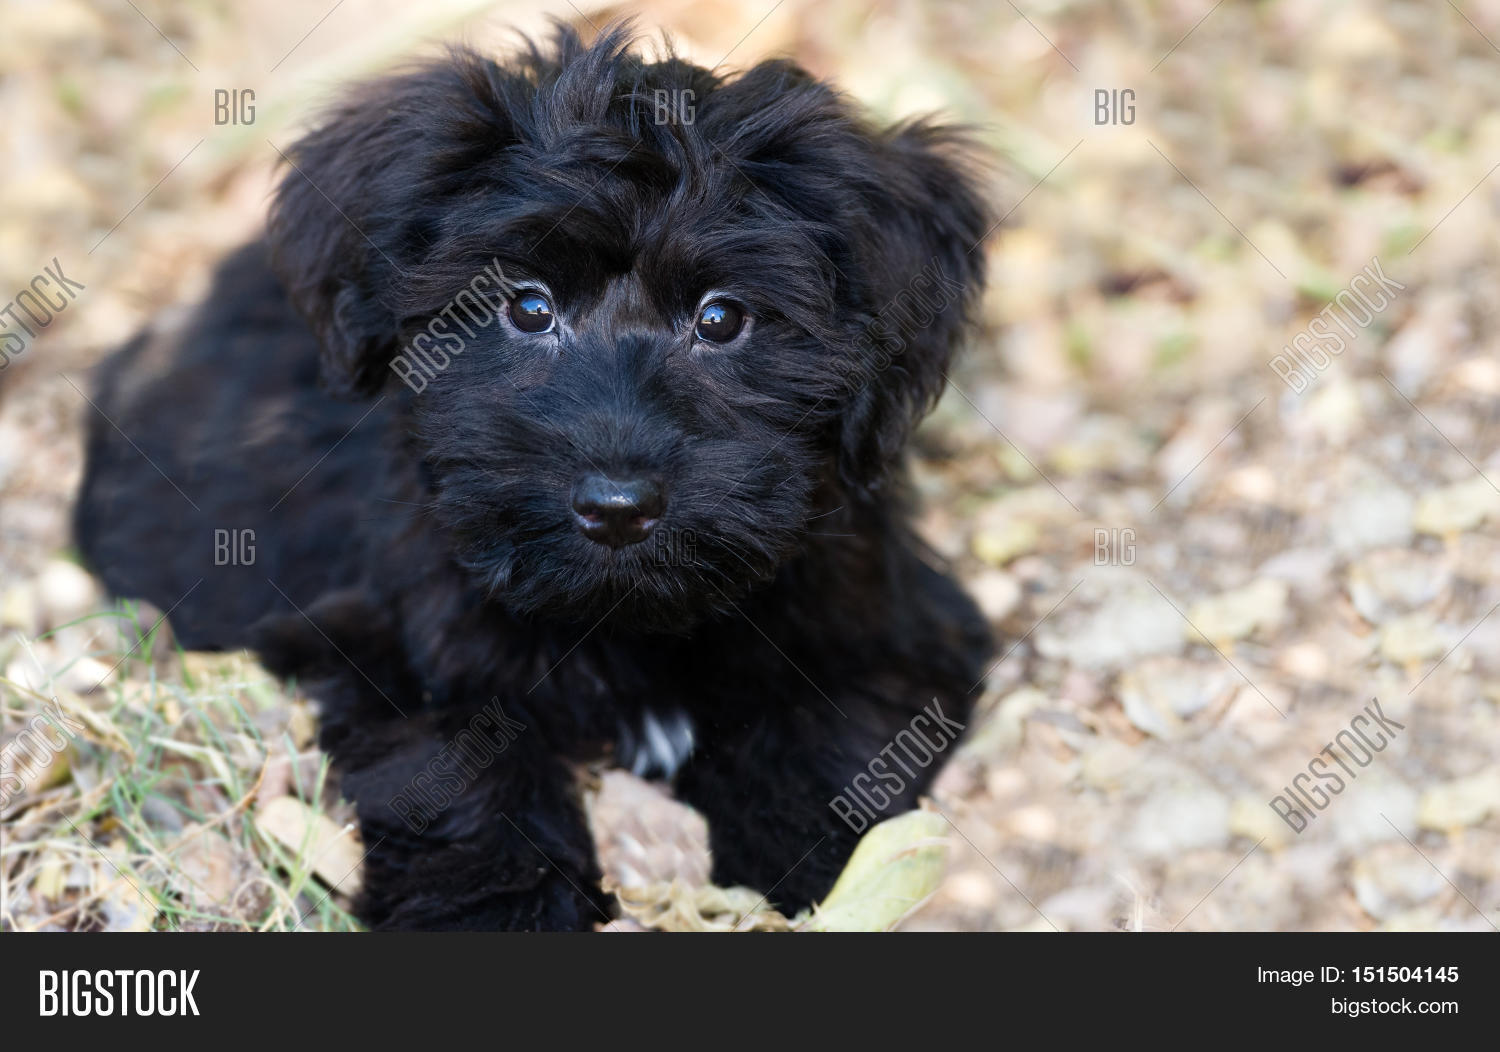 puppy dog cute is an adorable fluffy black puppy dog